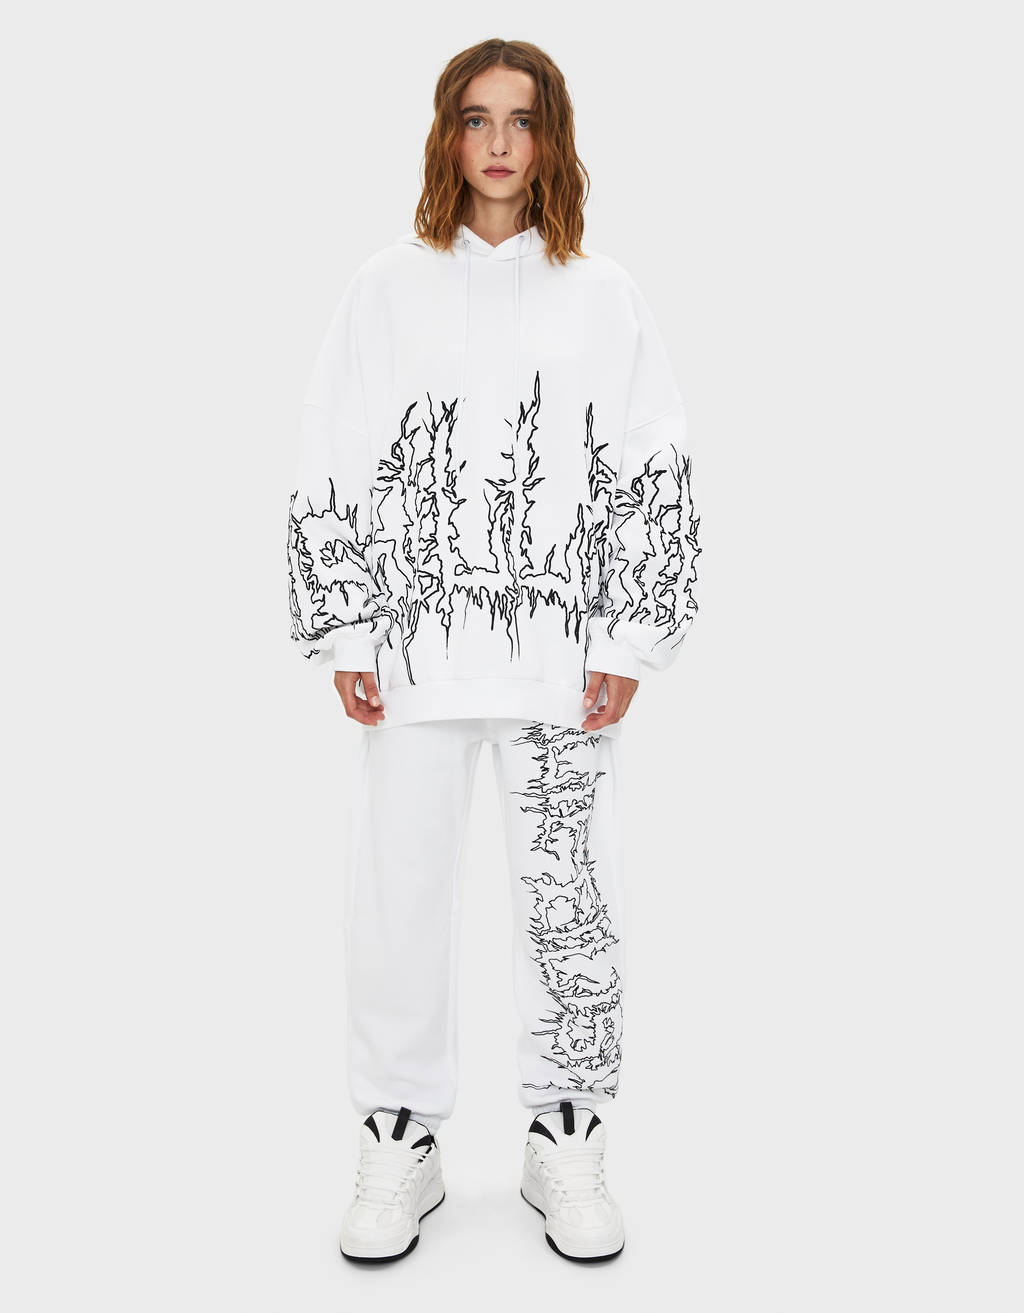 Billie Eilish x Bershka joggers